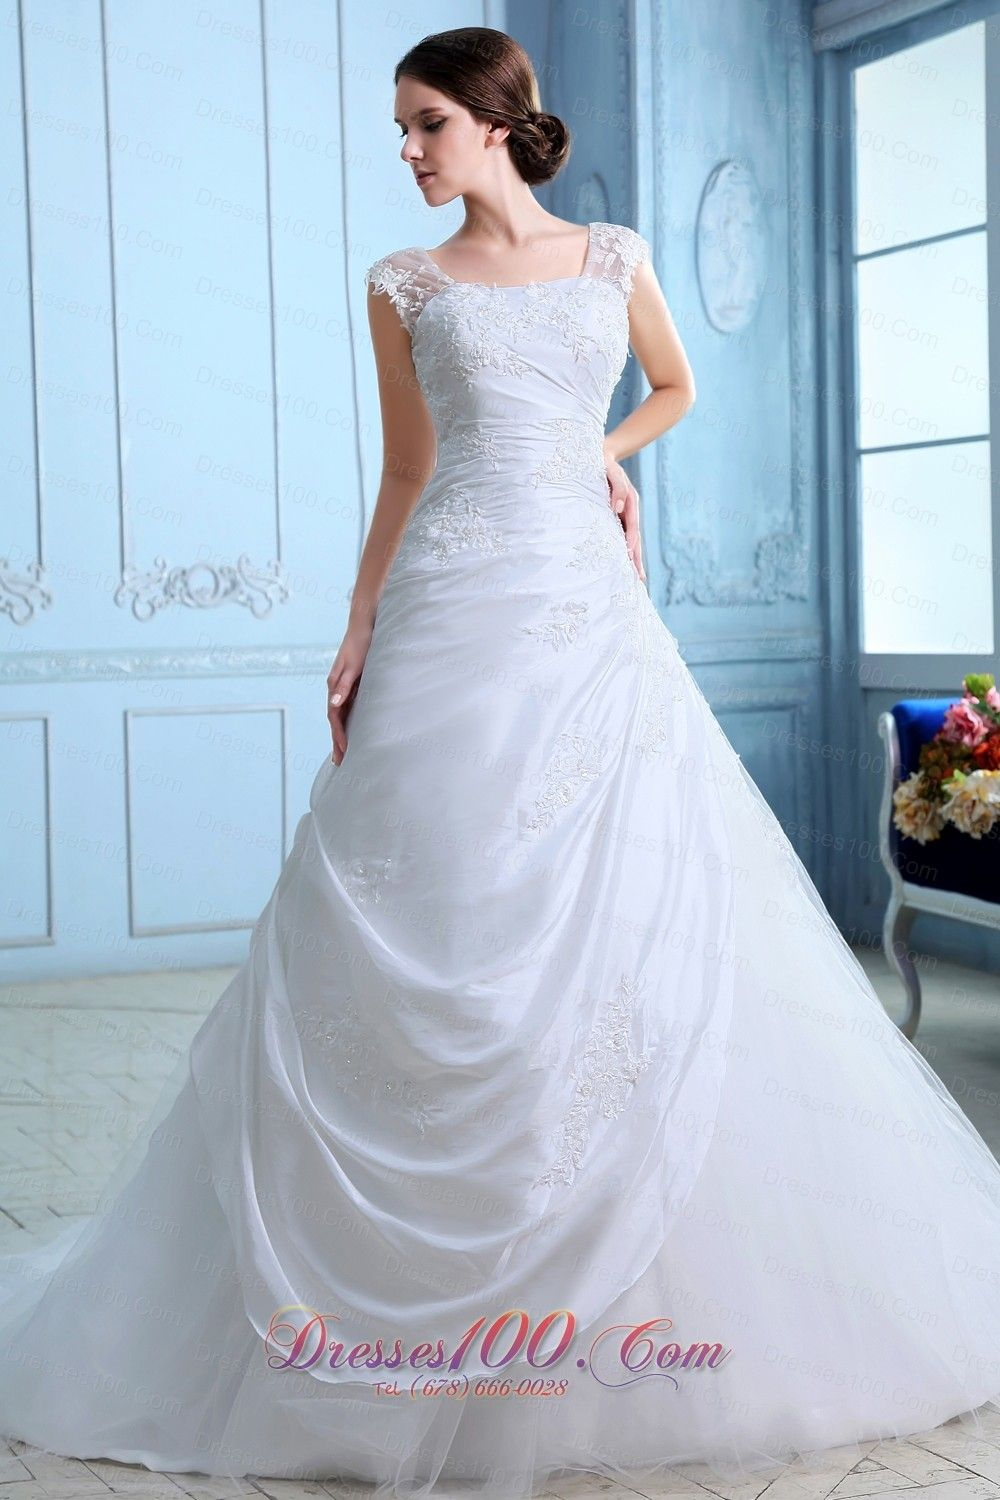 Snow White wedding dress in General Rodr guez (Buenos Aires ...